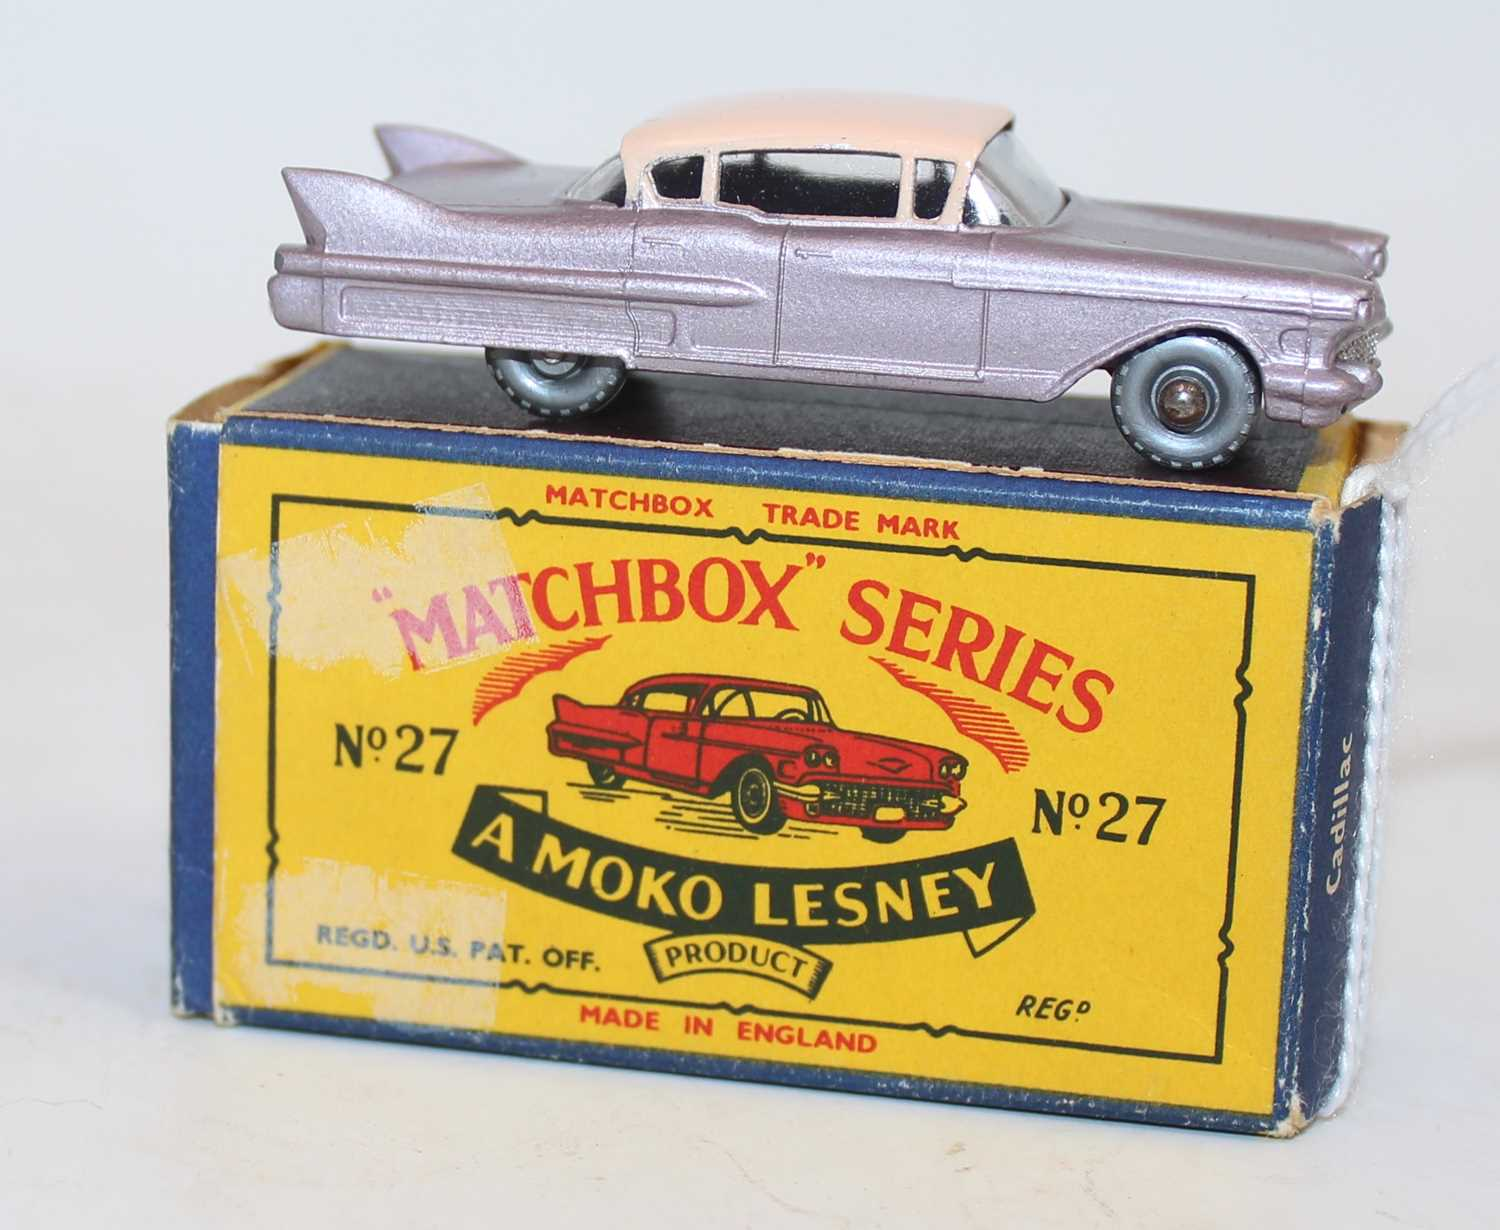 Matchbox Lesney 1-75 series No.27C Cadillac Sedan in metallic lilac body with pink roof and - Image 2 of 2